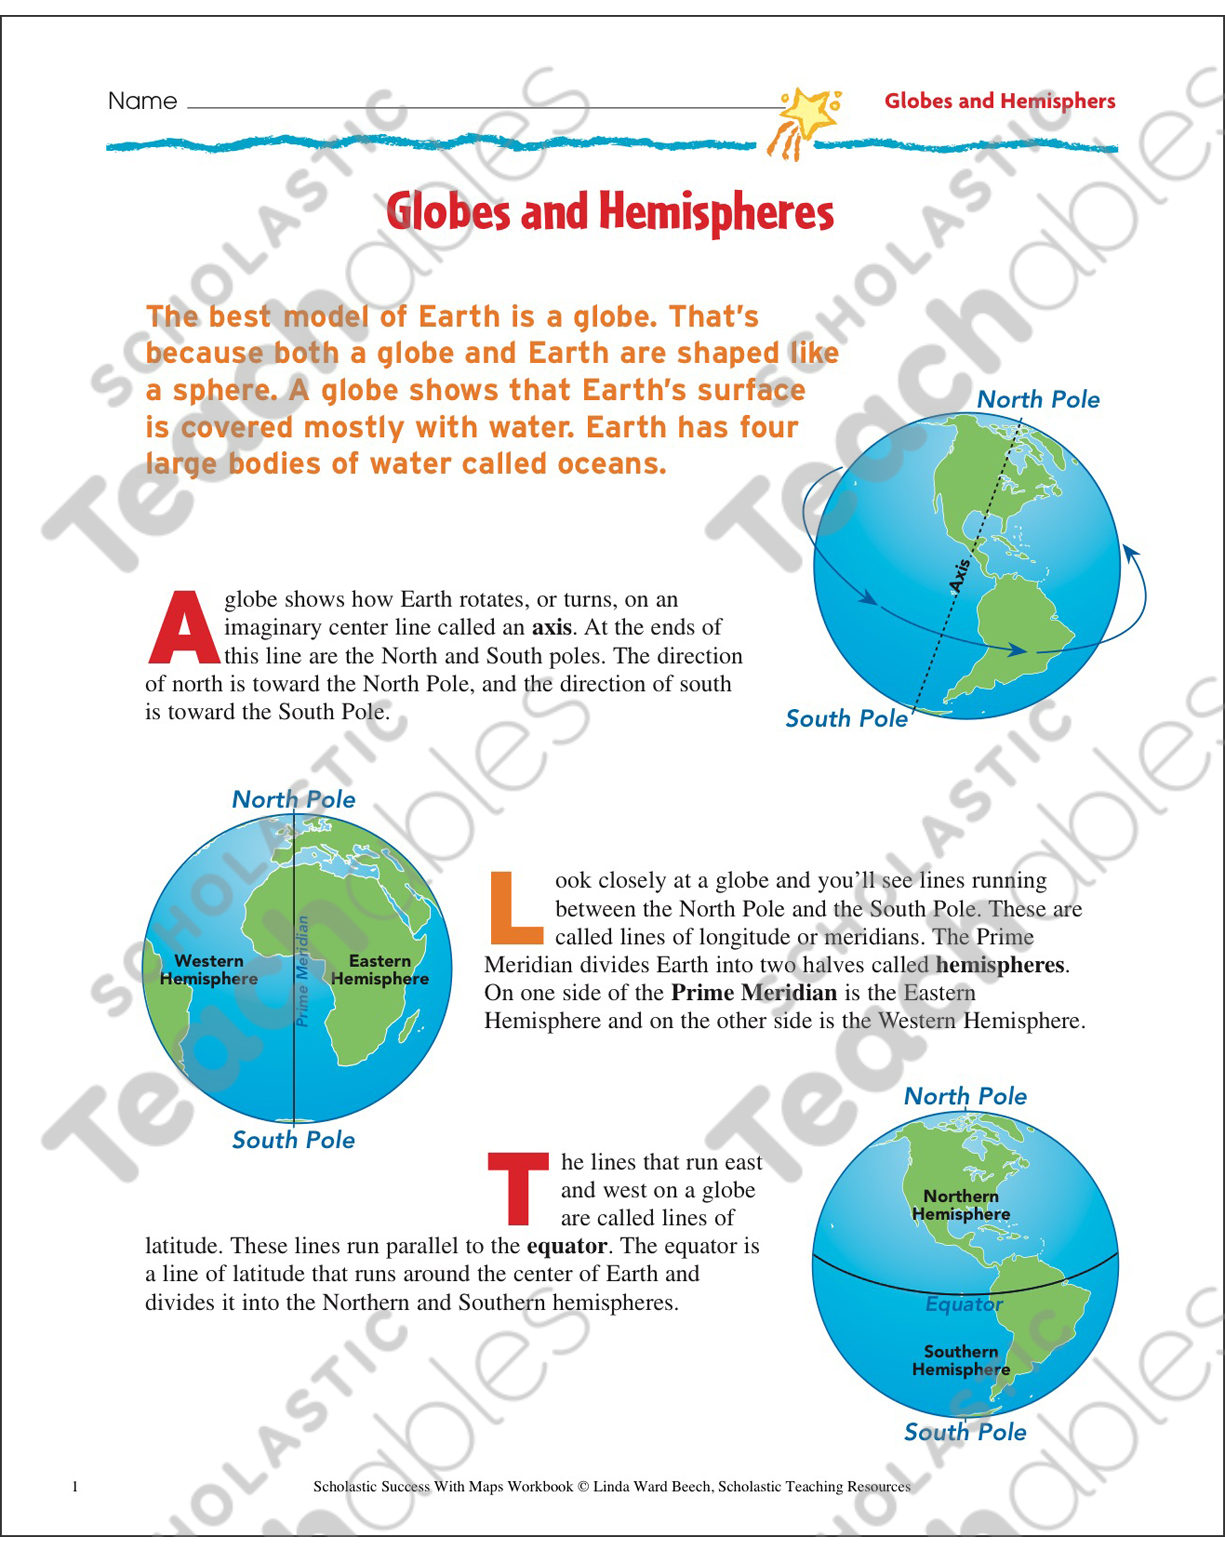 Globes and hemispheres map skills printable maps and skills sheets see inside image gumiabroncs Image collections